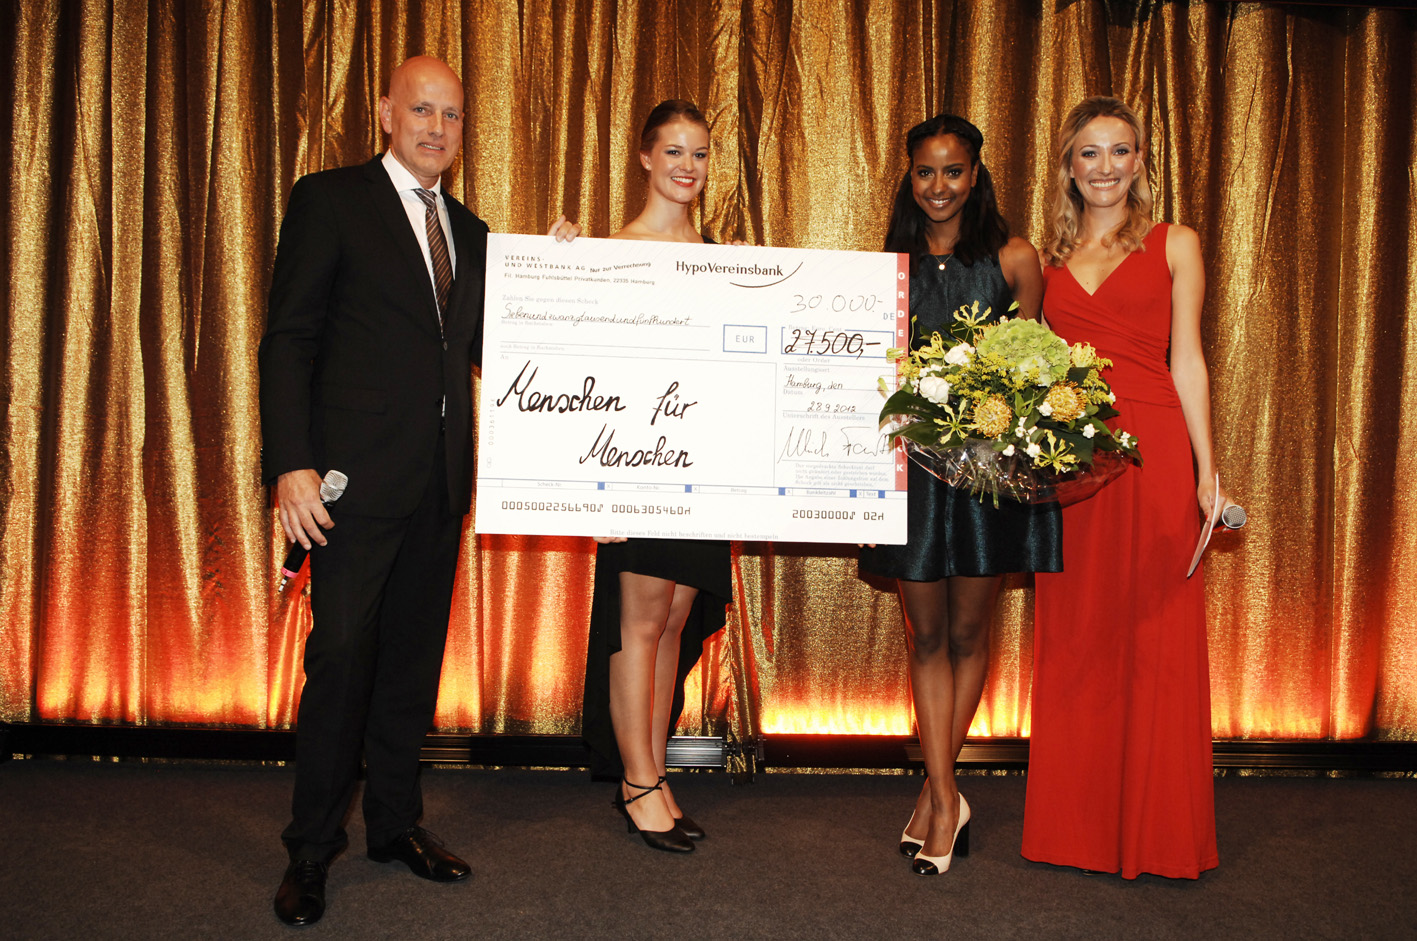 Cash-gala-22 in Cash.Gala 2012: das Top-Event in Bildern